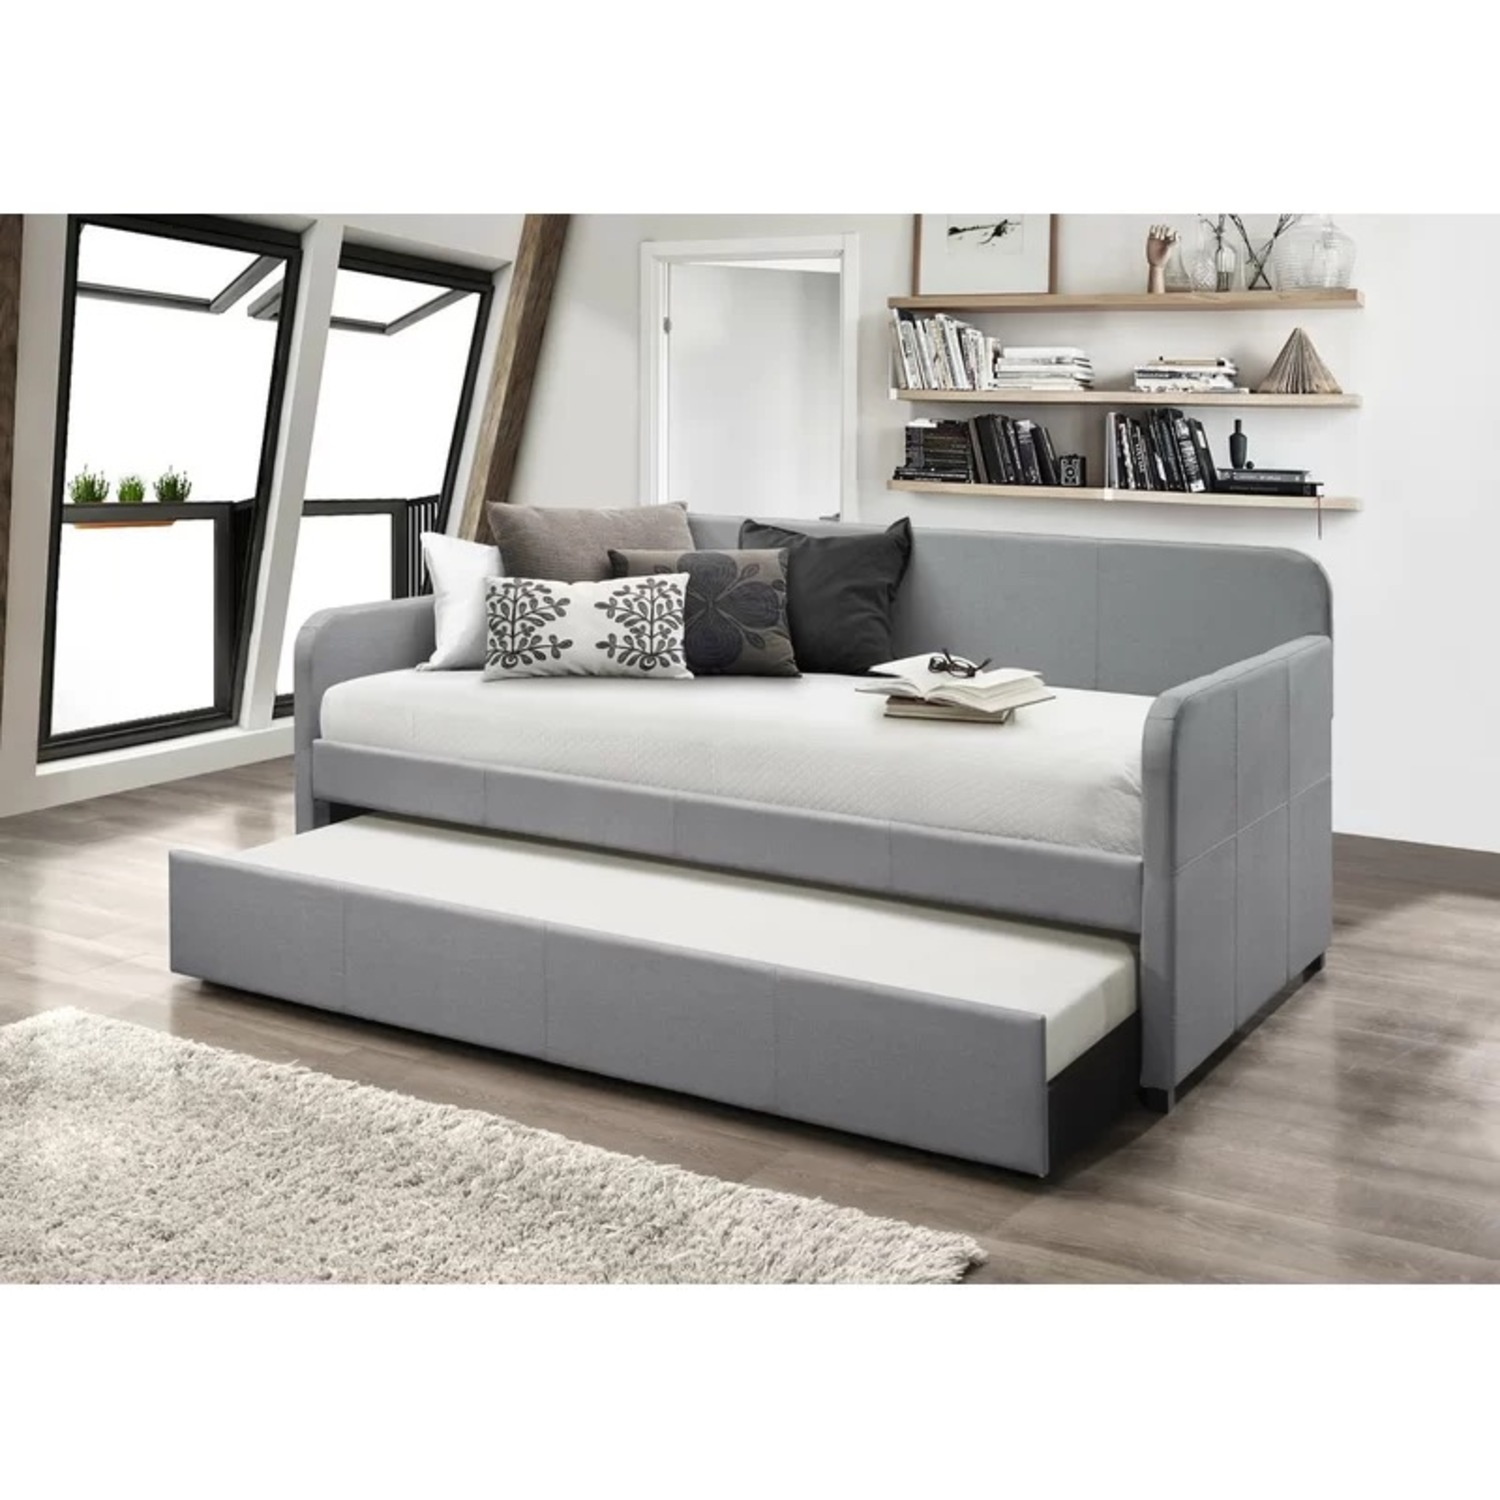 Wayfair Upholstered Long Twin Daybed with Trundle Storage - image-2